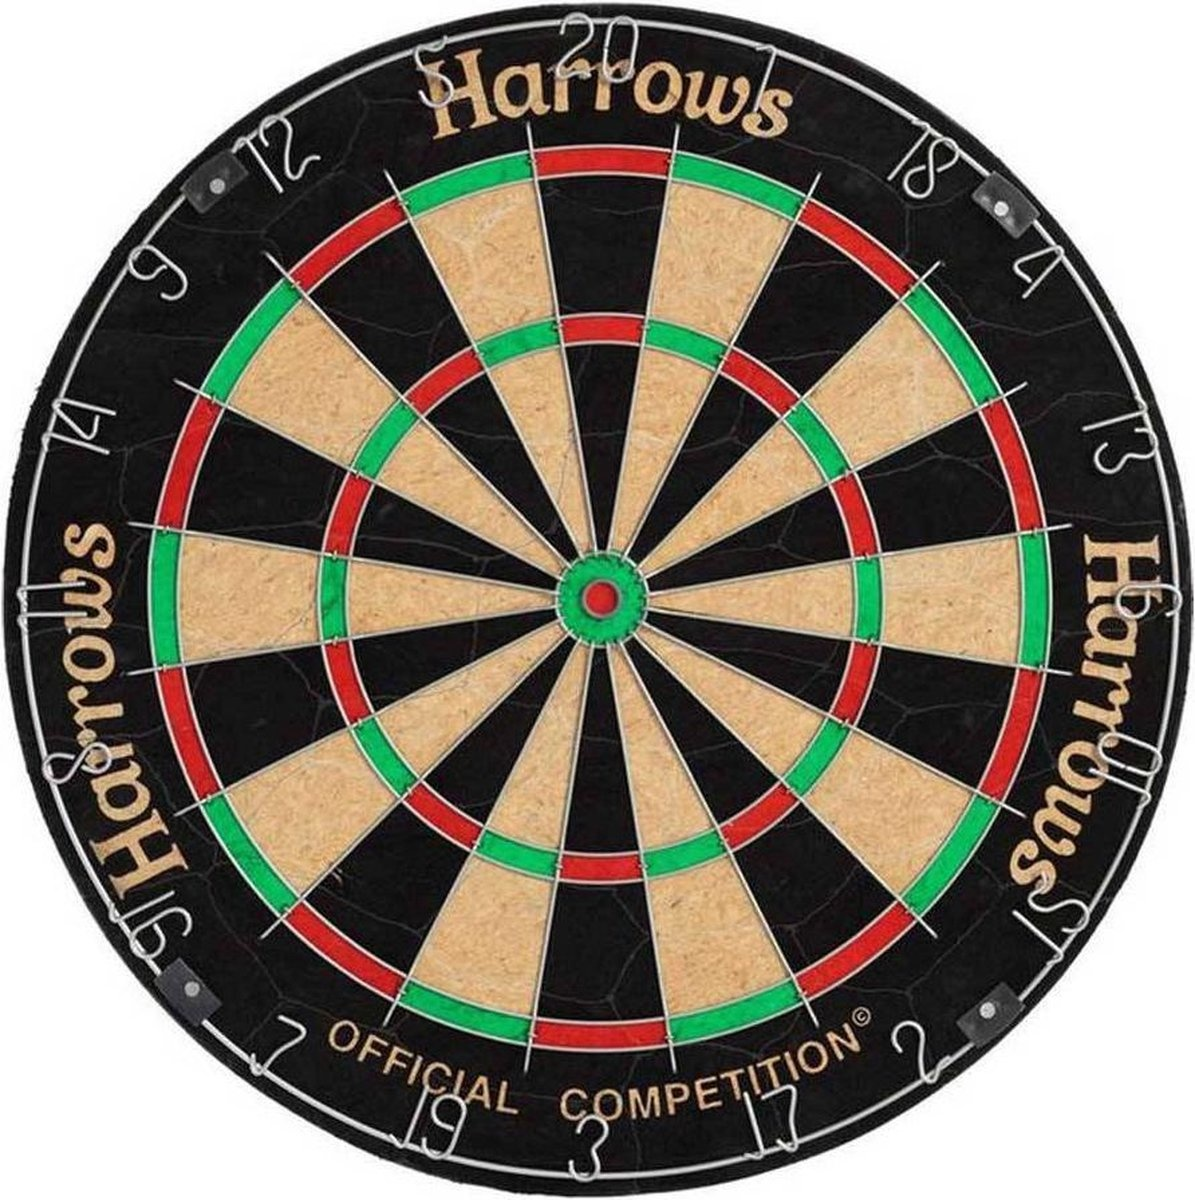 SALE: 10% - Harrows Official Competition